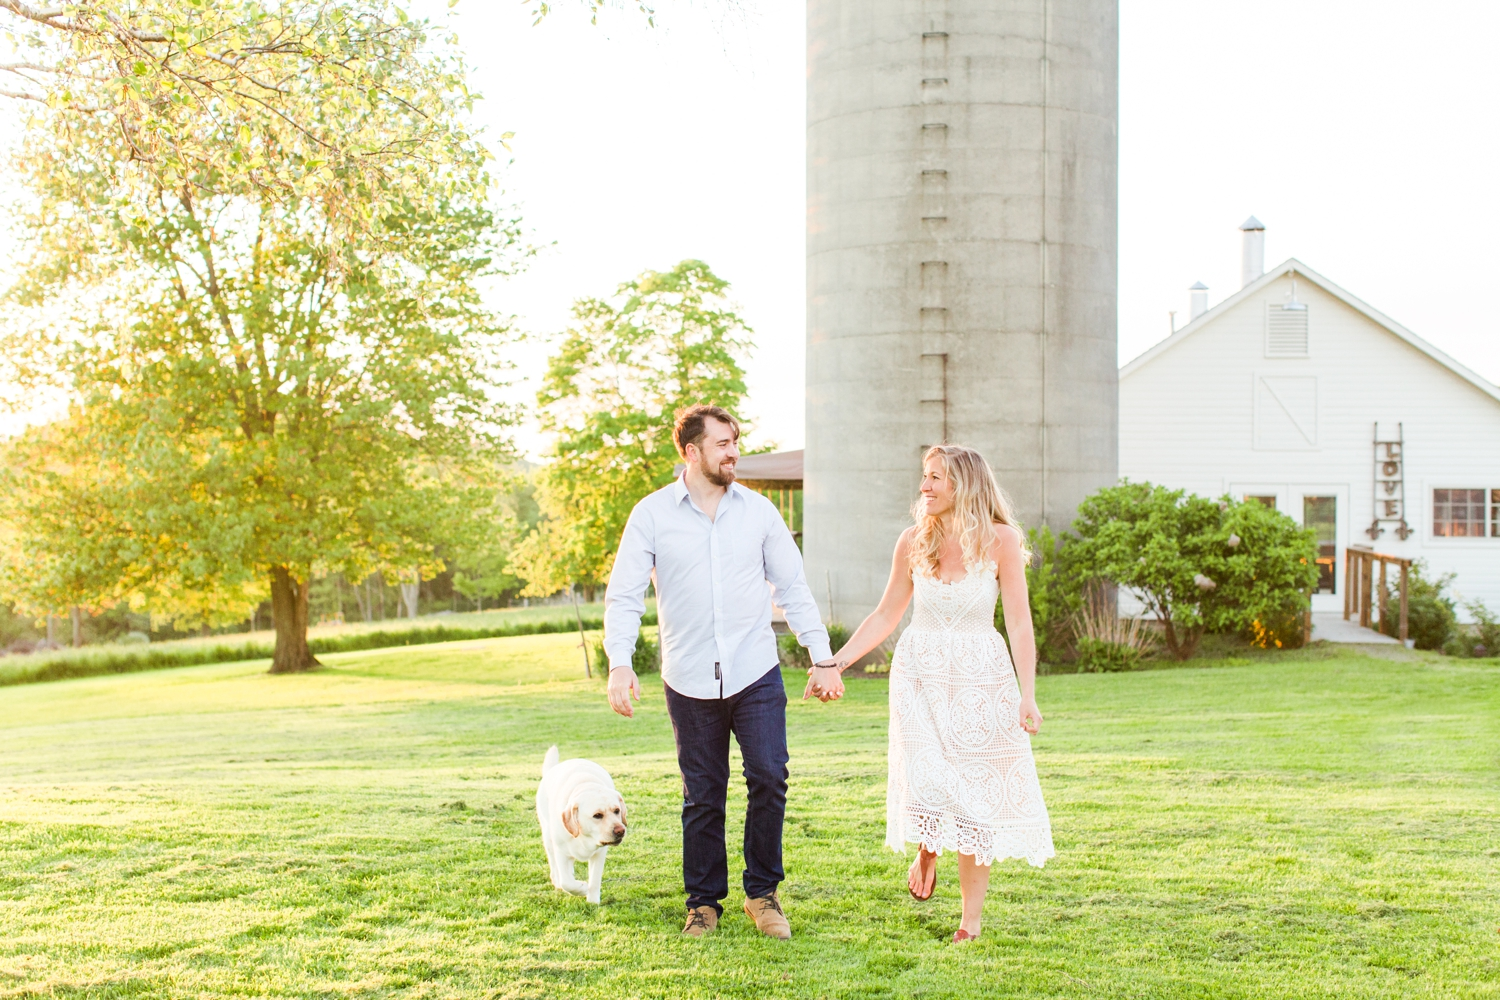 candlelight-farms-inn-engagement-session-new-milford-connecticut-wedding-photographer-shaina-lee-photography-photo-29.jpg